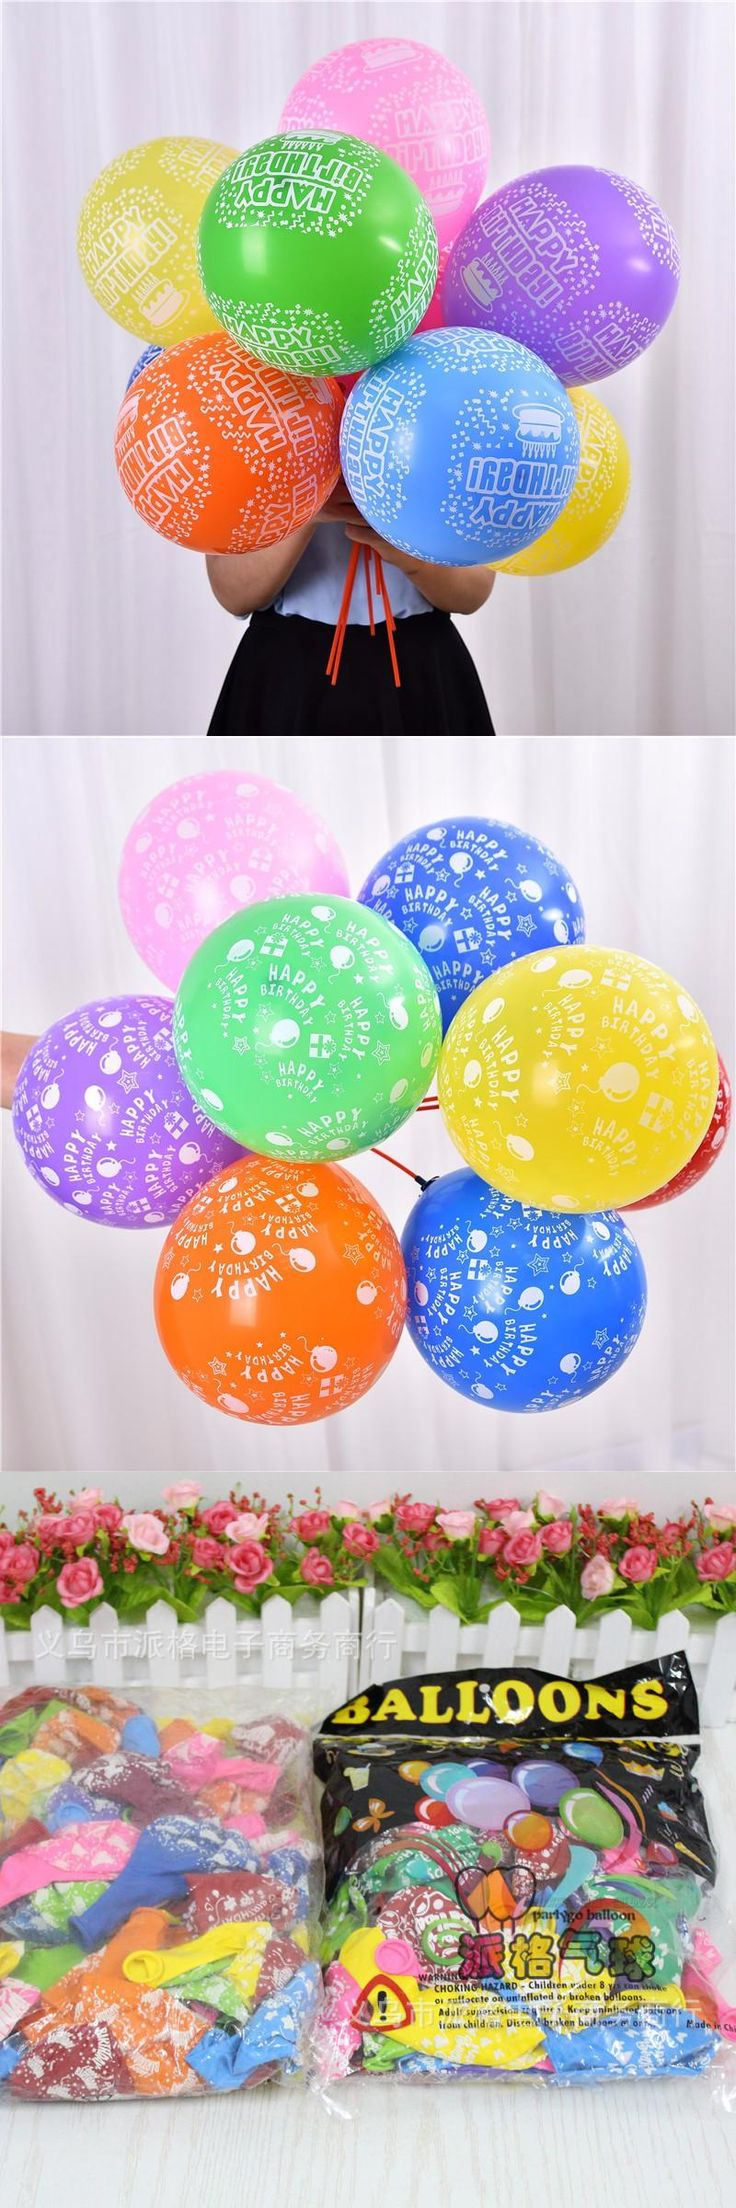 [Visit to Buy] 10pcs/lot 12inch Colorful Happy Birthday Cake Printing Round Balloons Latex Ballons Balls Globos Kid Gift Toy #Advertisement